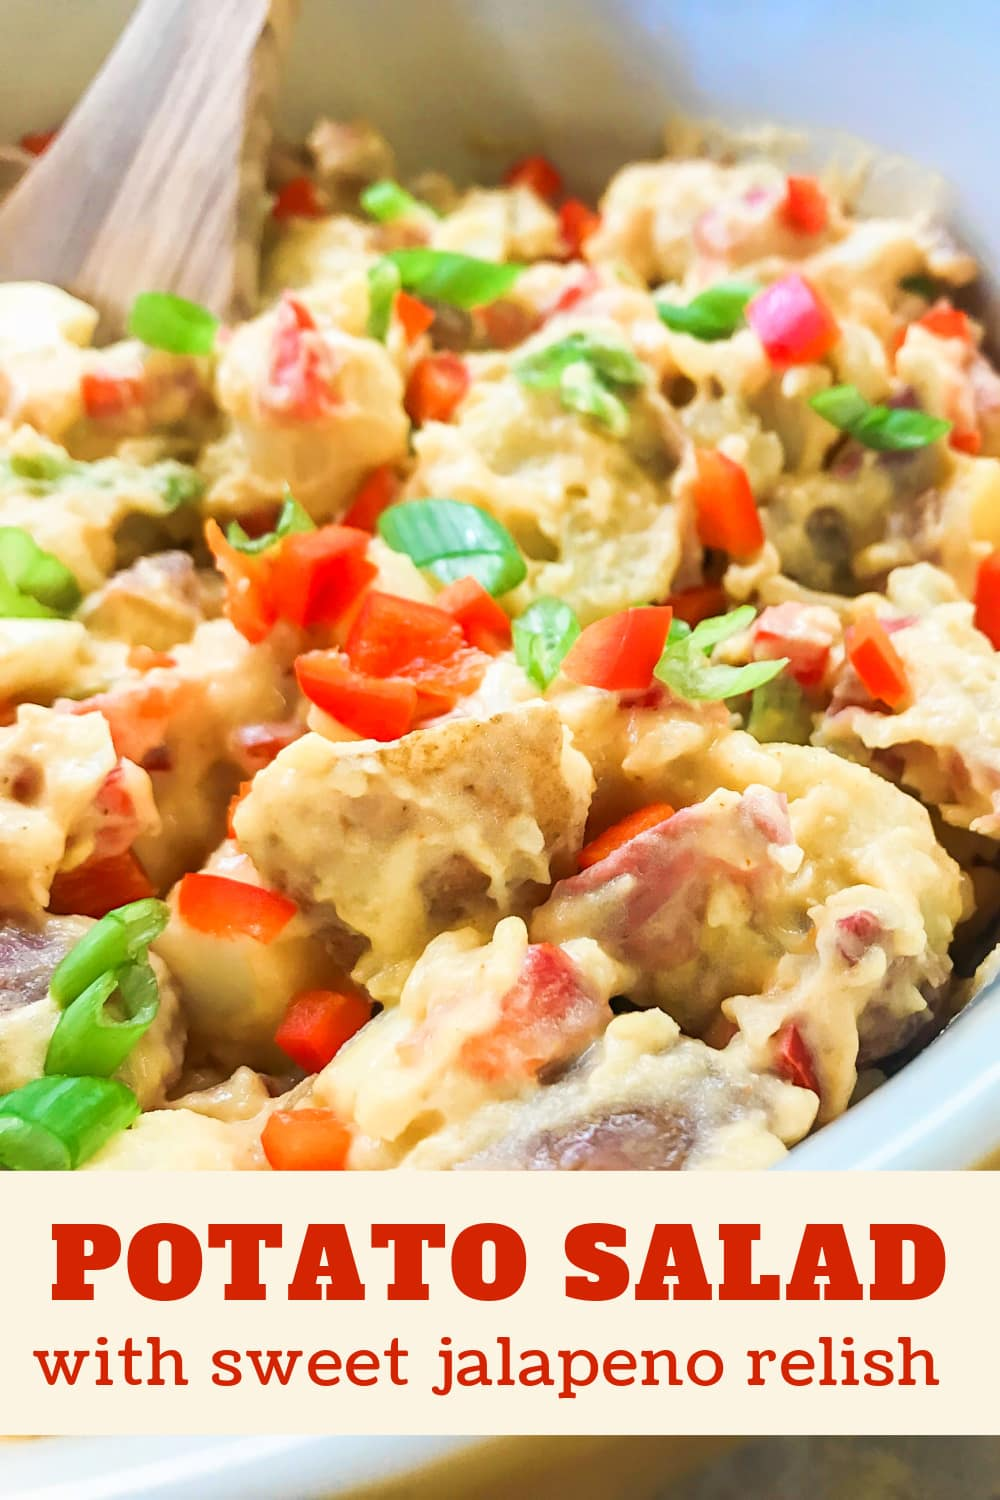 Creamy potato salad with red bell peppers and scallions on top.